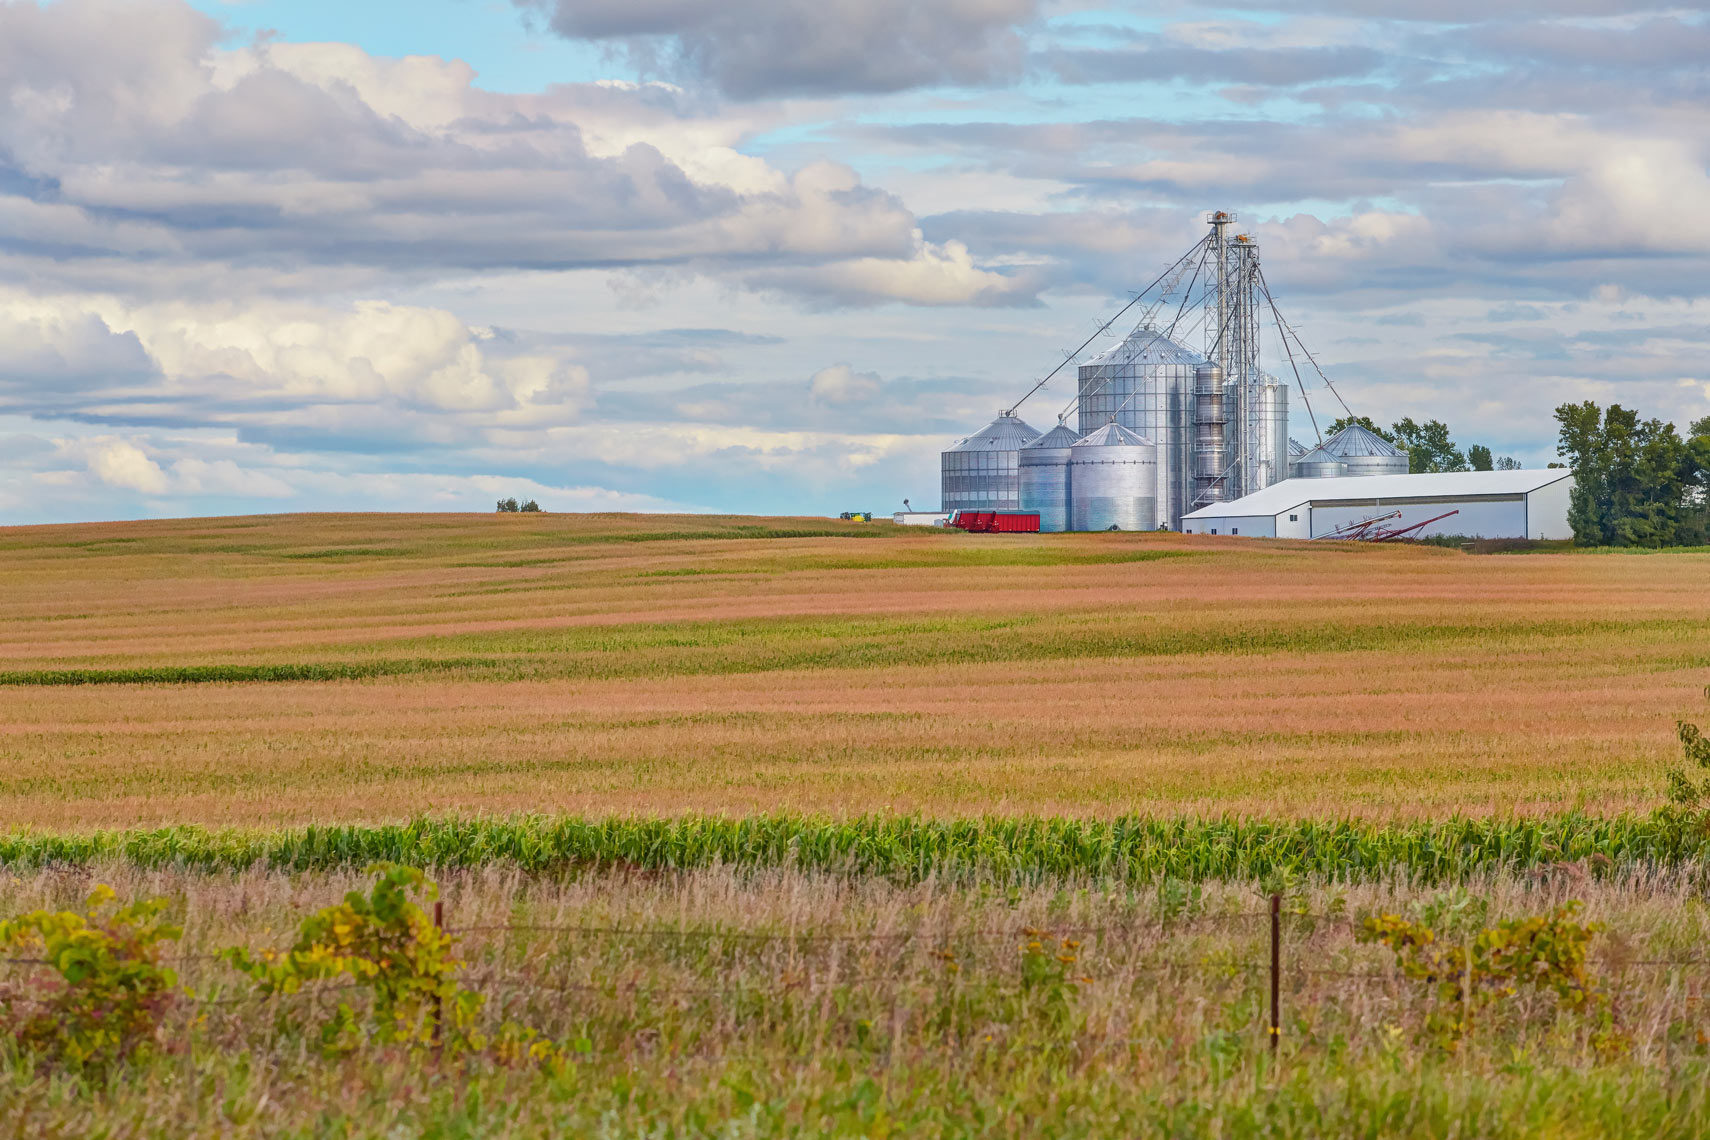 Farm field/autumn/silver silos/agriculture photography